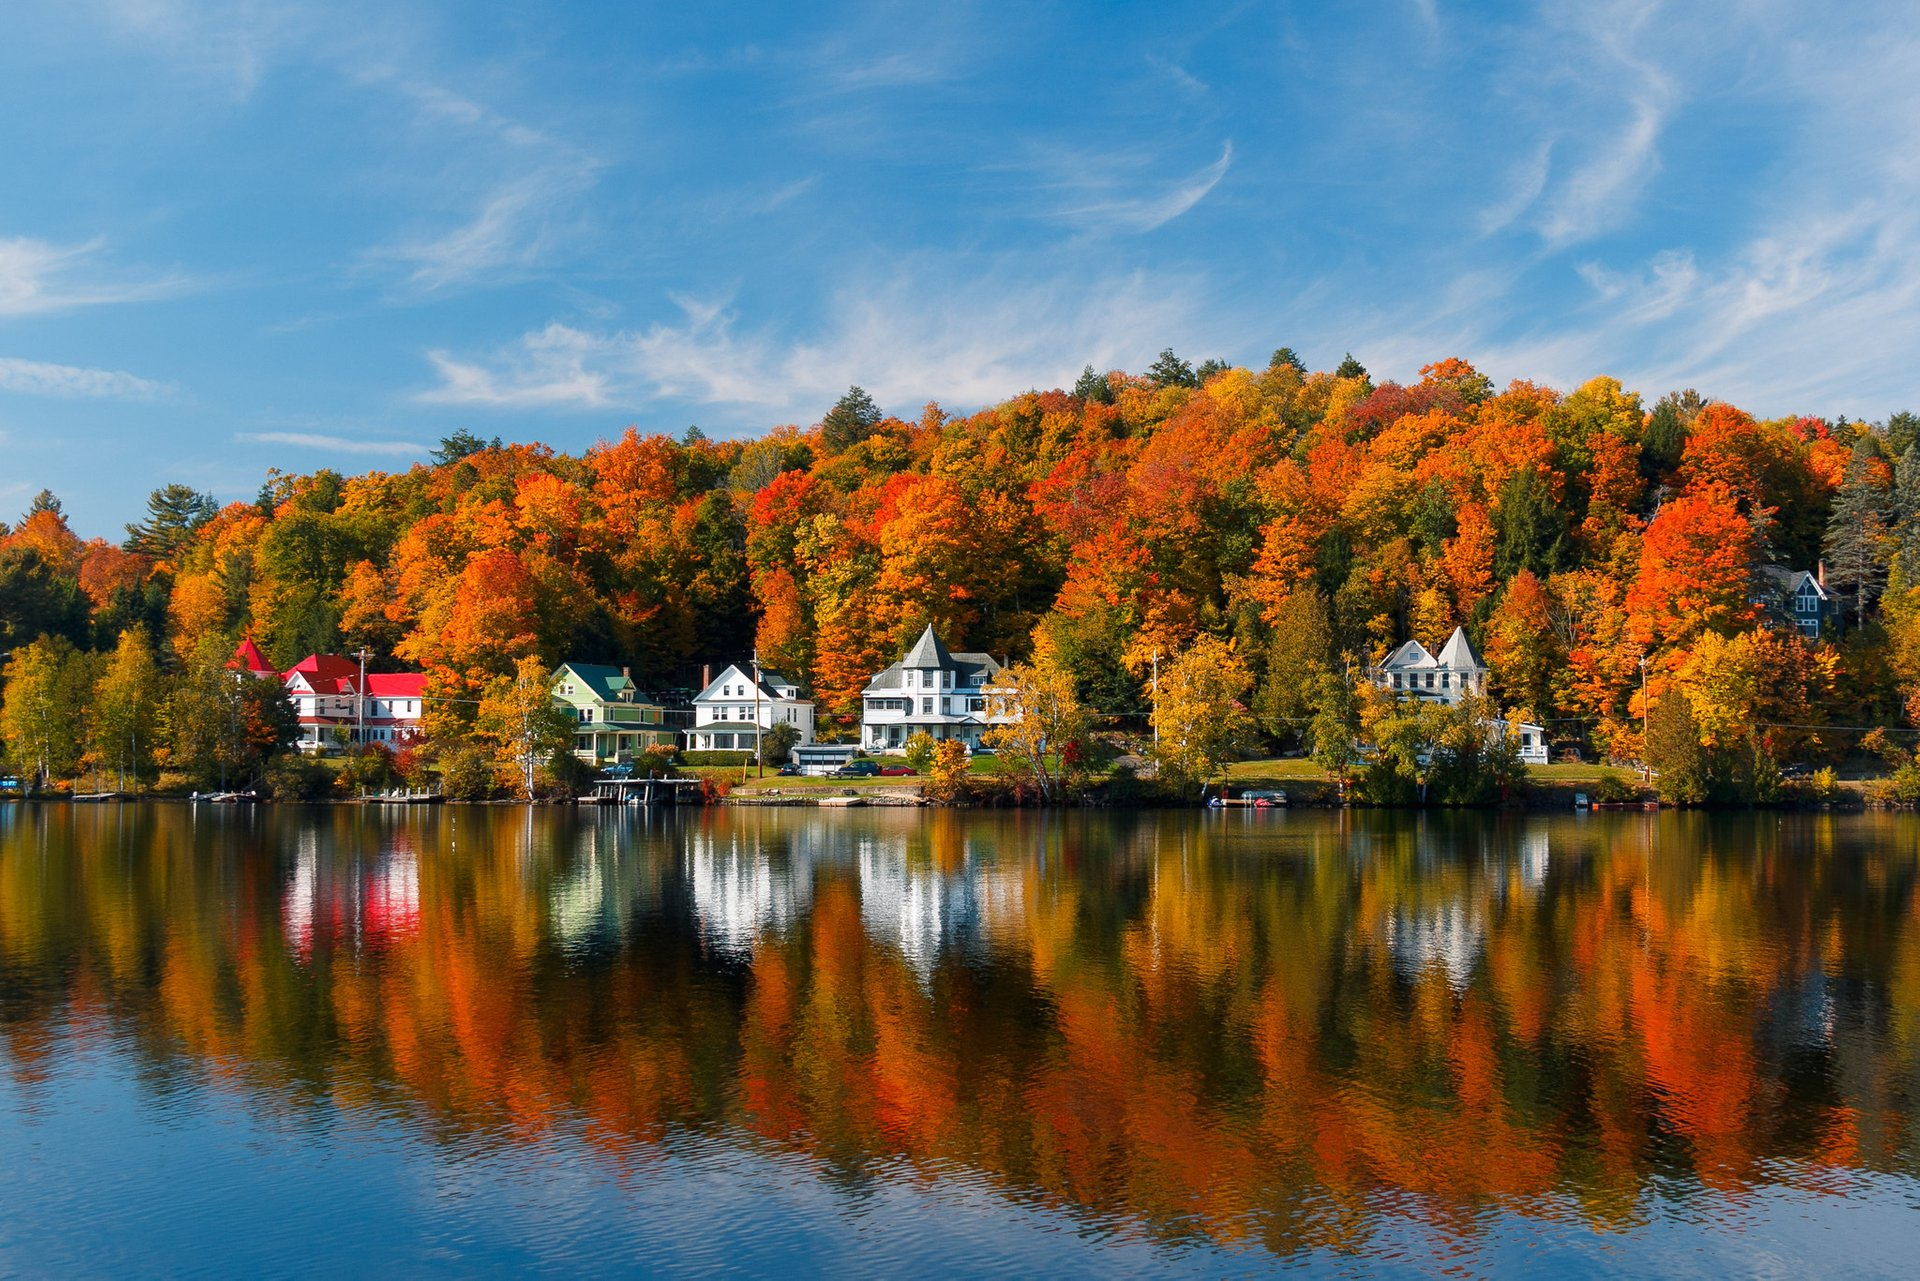 Adirondack Lakes in New York State 2020 - Best Time